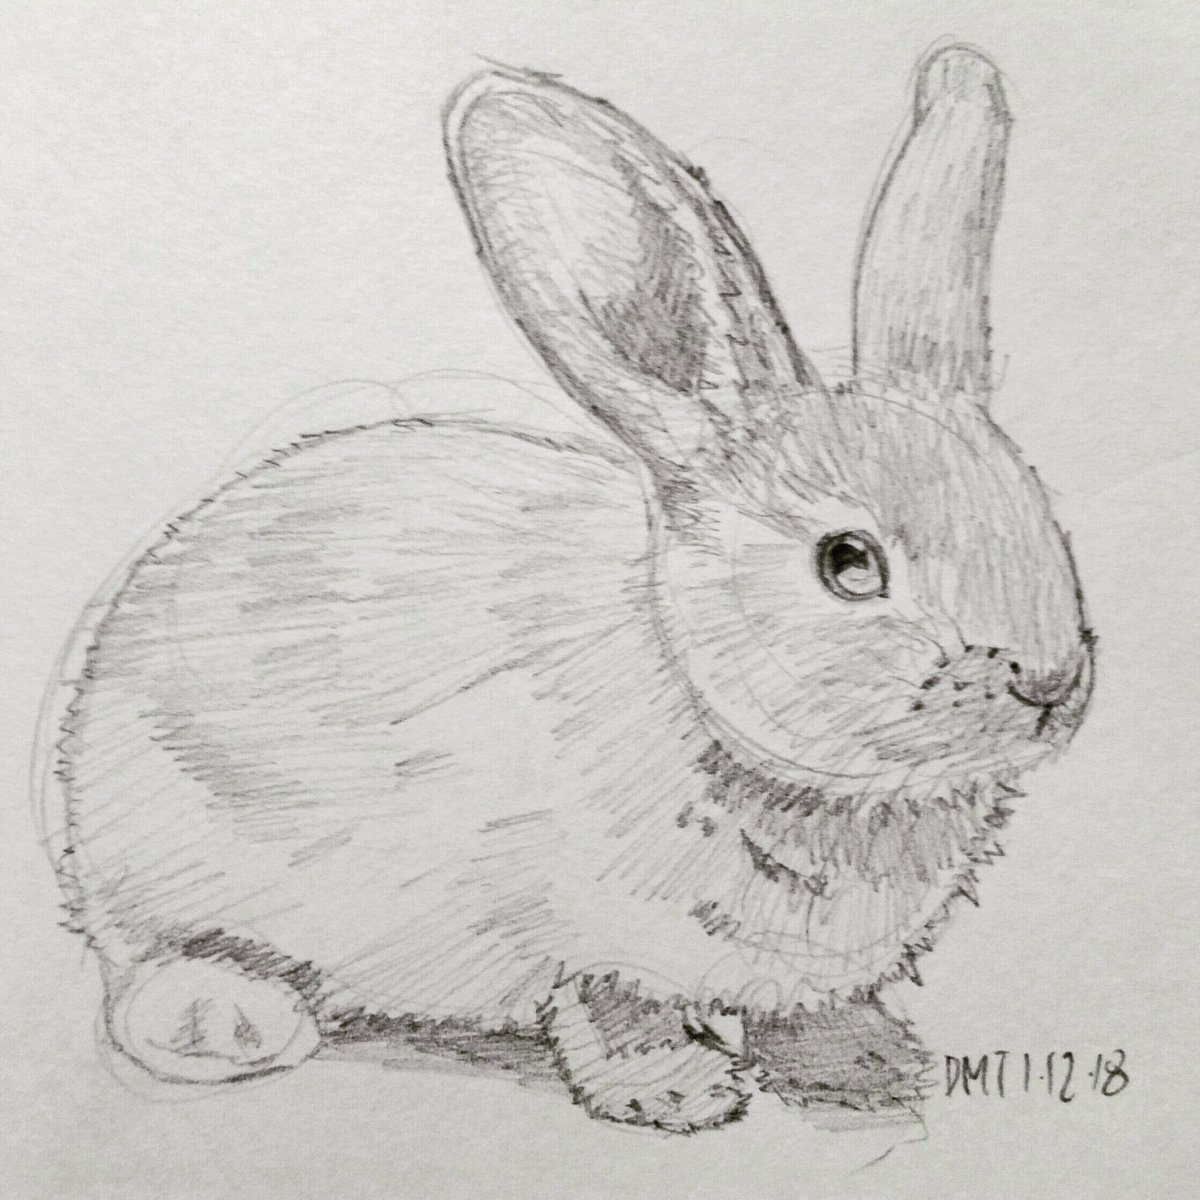 Rabbit pencil sketch dailydrawingchallenge dmt 2018pic twitter com qupe8re0gb